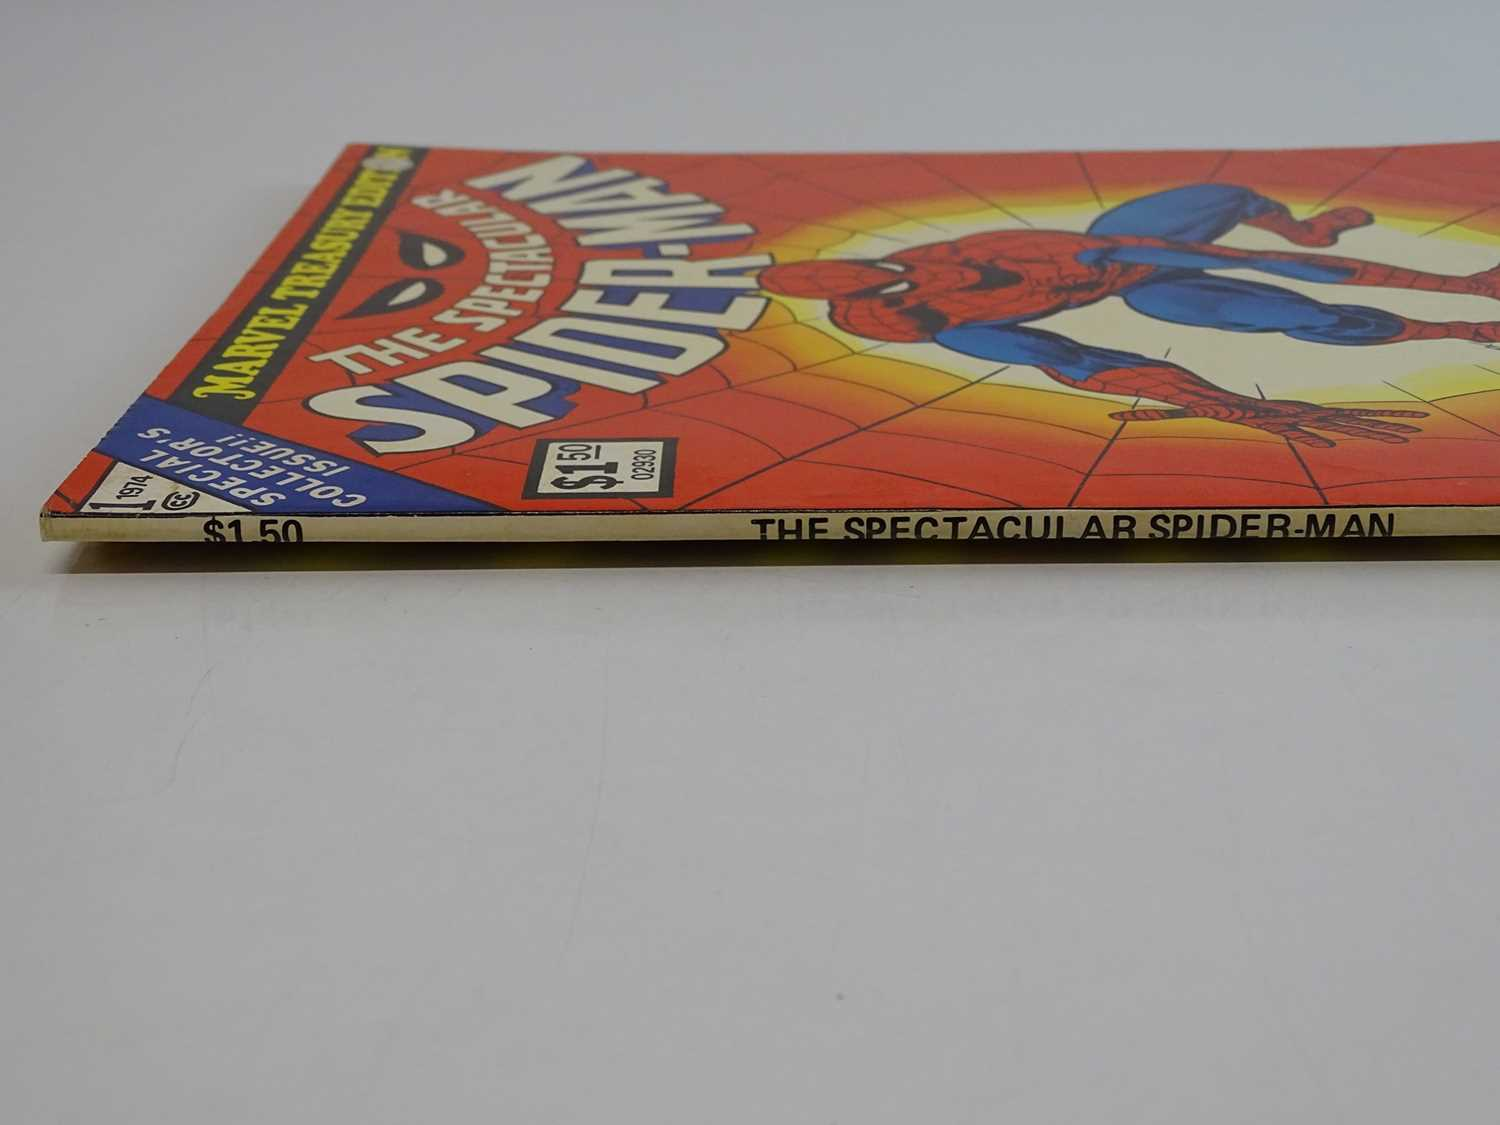 Marvel Treasury Edition #1 Spectacular Spider-Man (Marvel - 1974) Includes Gil Kane and Steve - Image 7 of 8